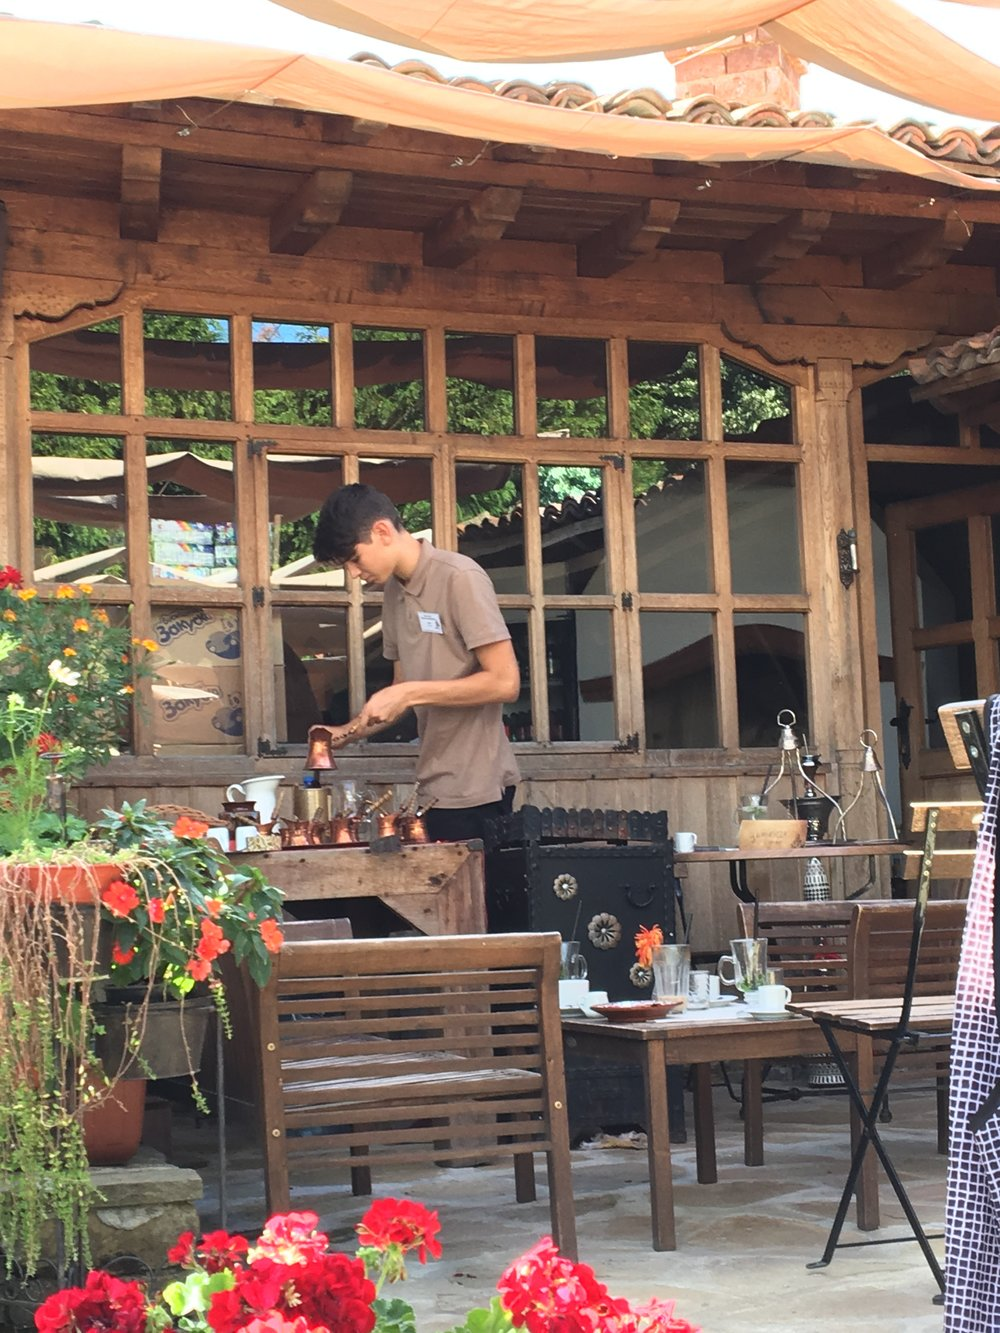 Turkish coffee in the making at the Dimcho Kehaya Cafe